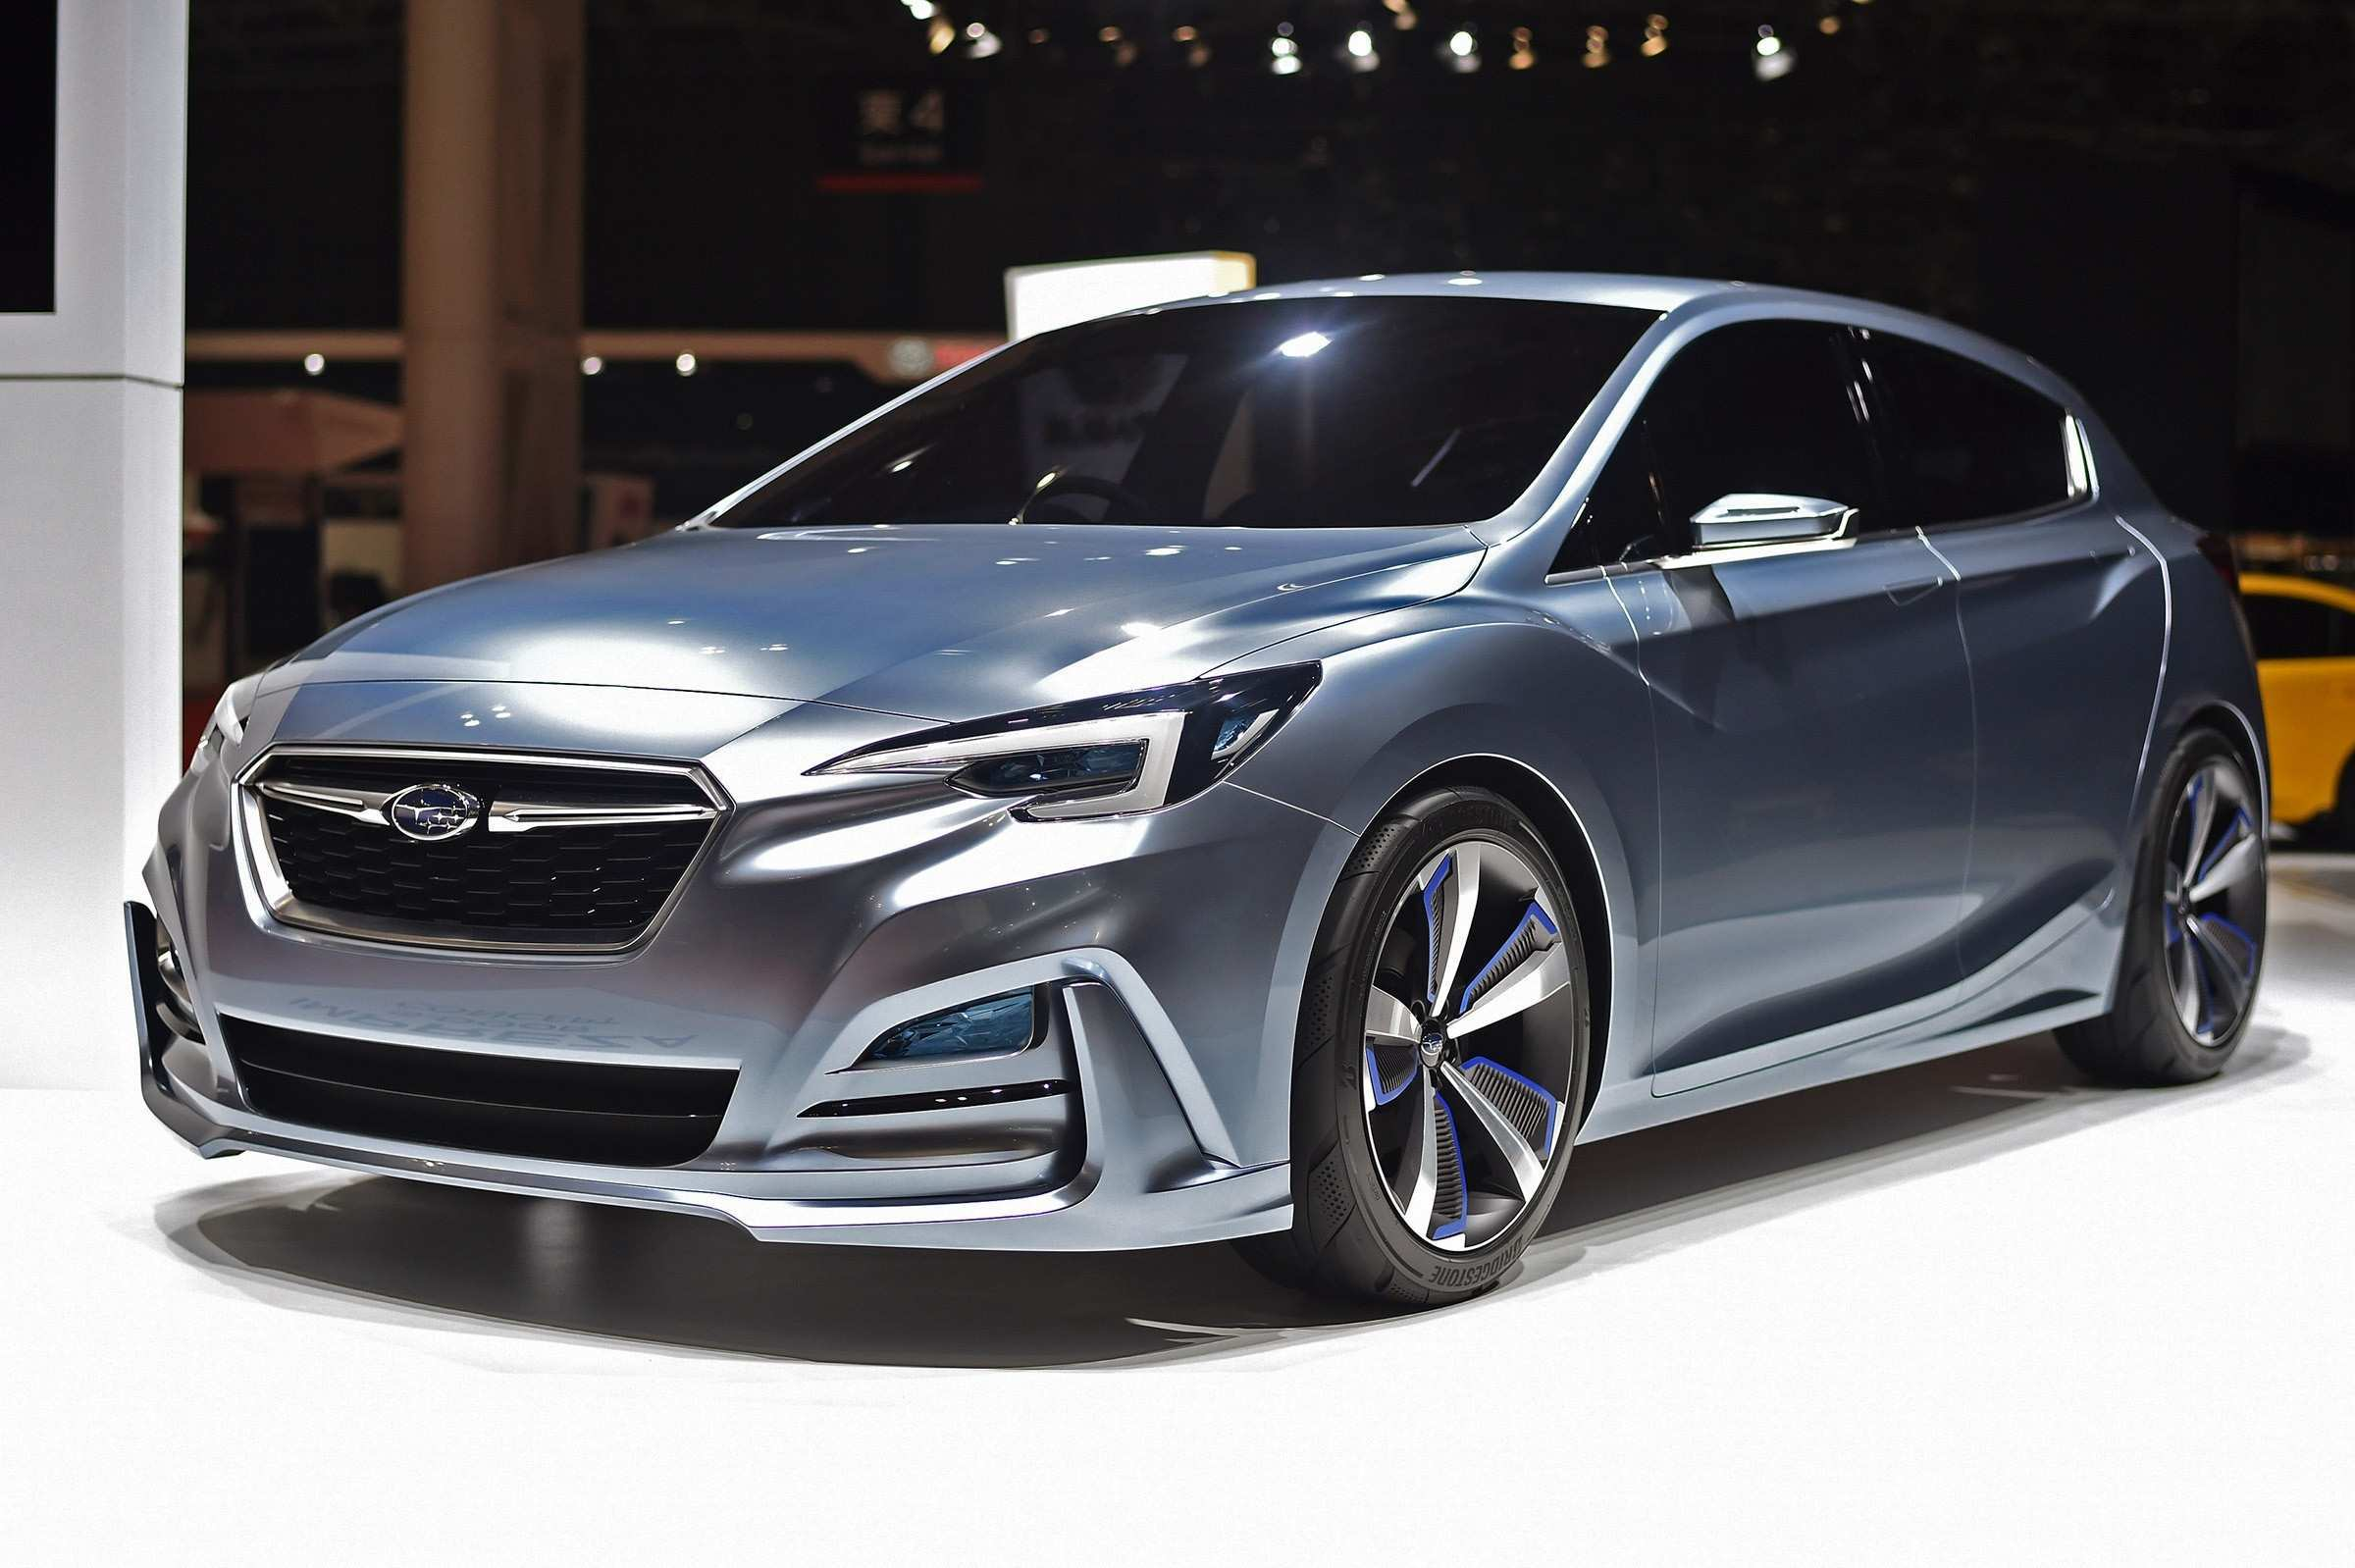 57 The Best Opel Astra New Shape 2020 Release